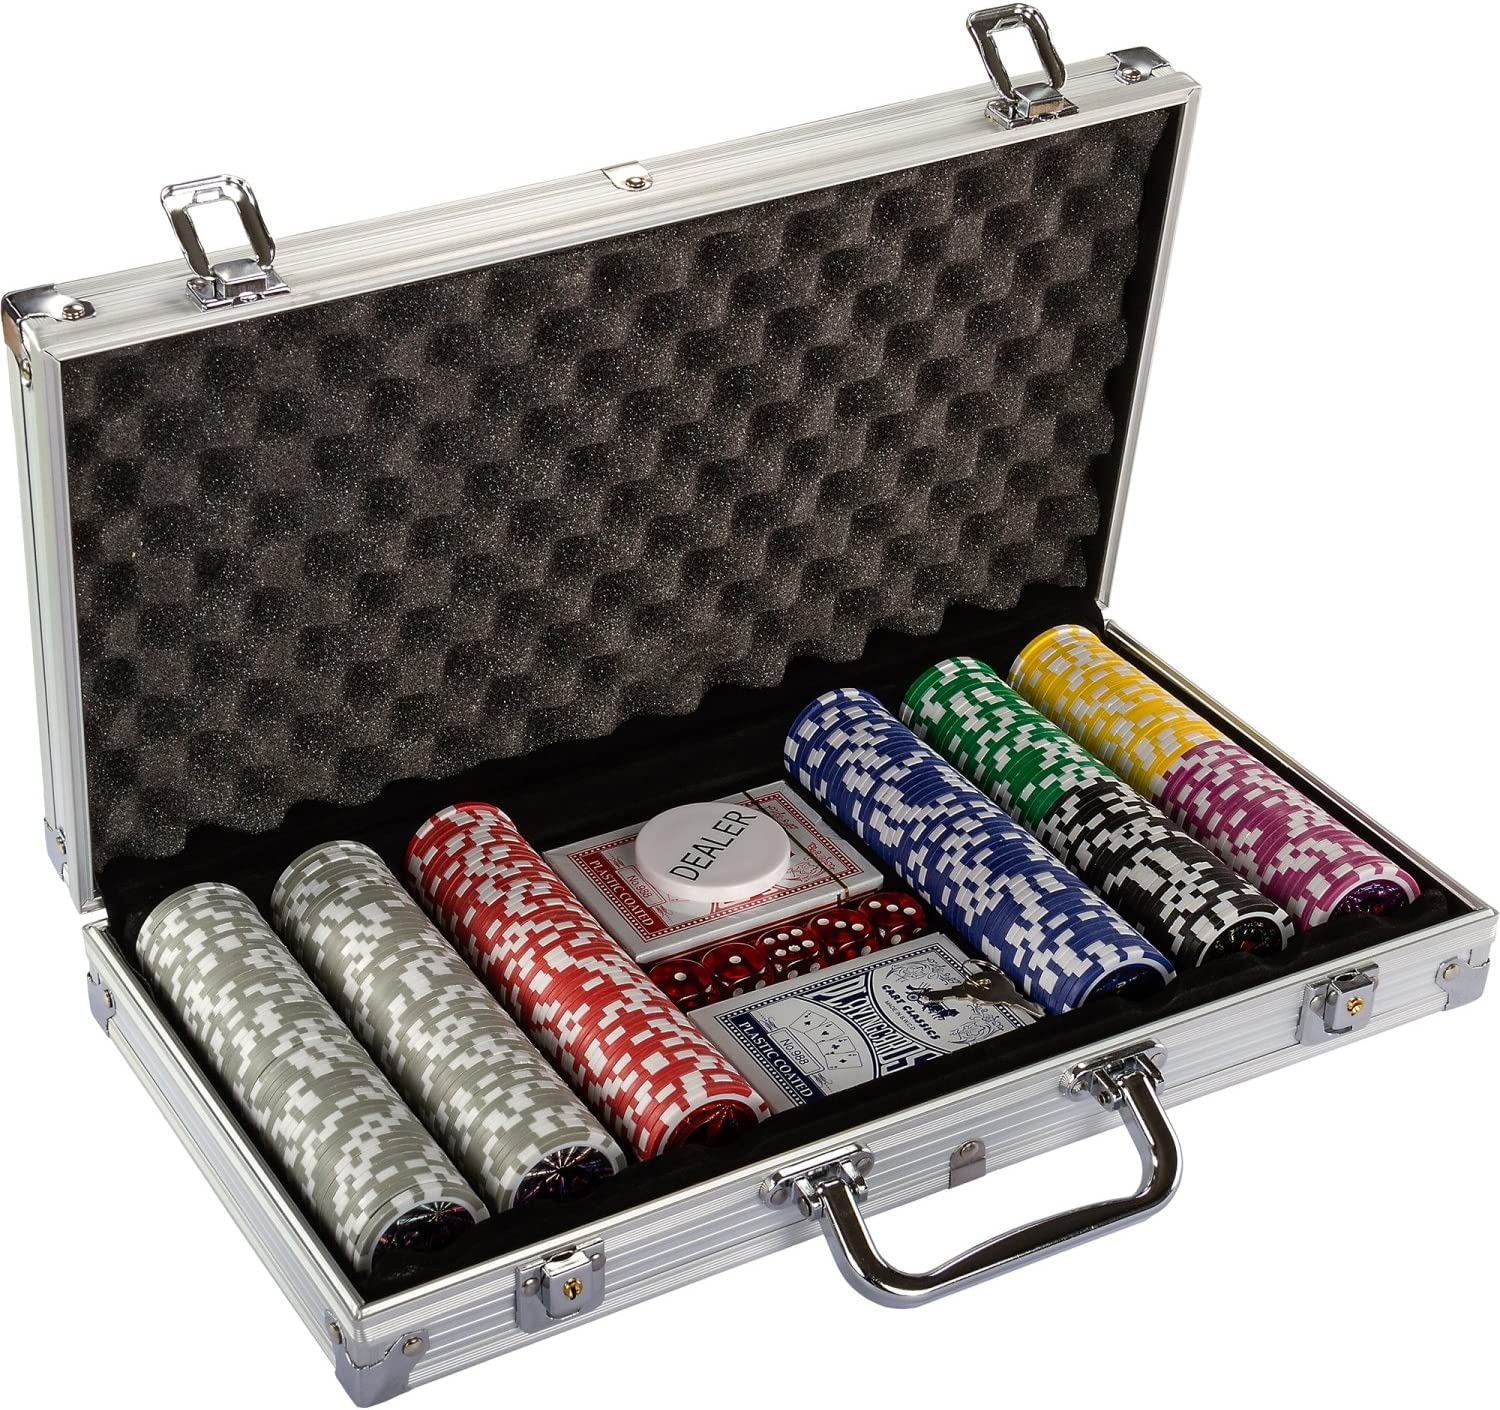 Poker Set With 500 1000 Laser Chip Casino Play Game Dice Lockable Aluminium Case Games Poker Card Games